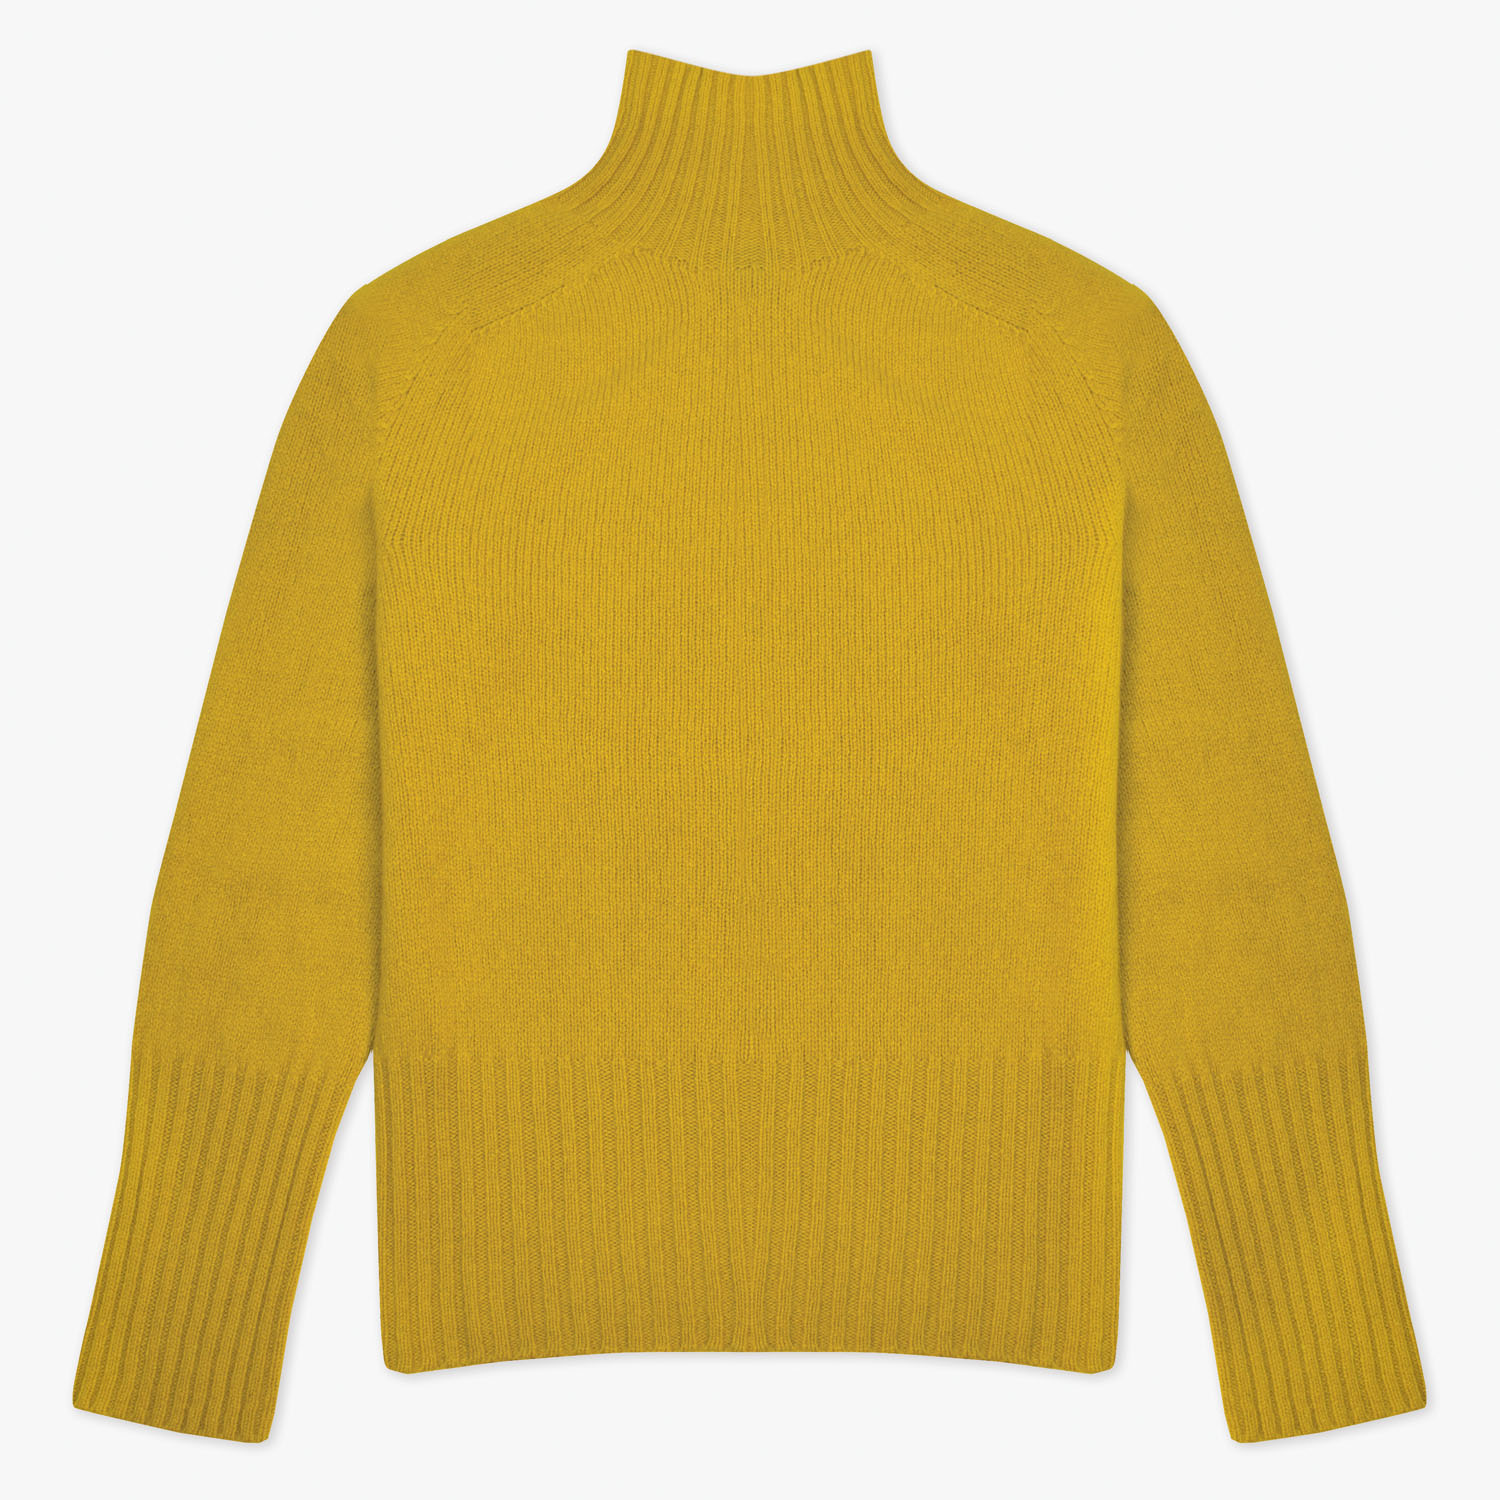 T-lab Skye womens knitwear saffron full